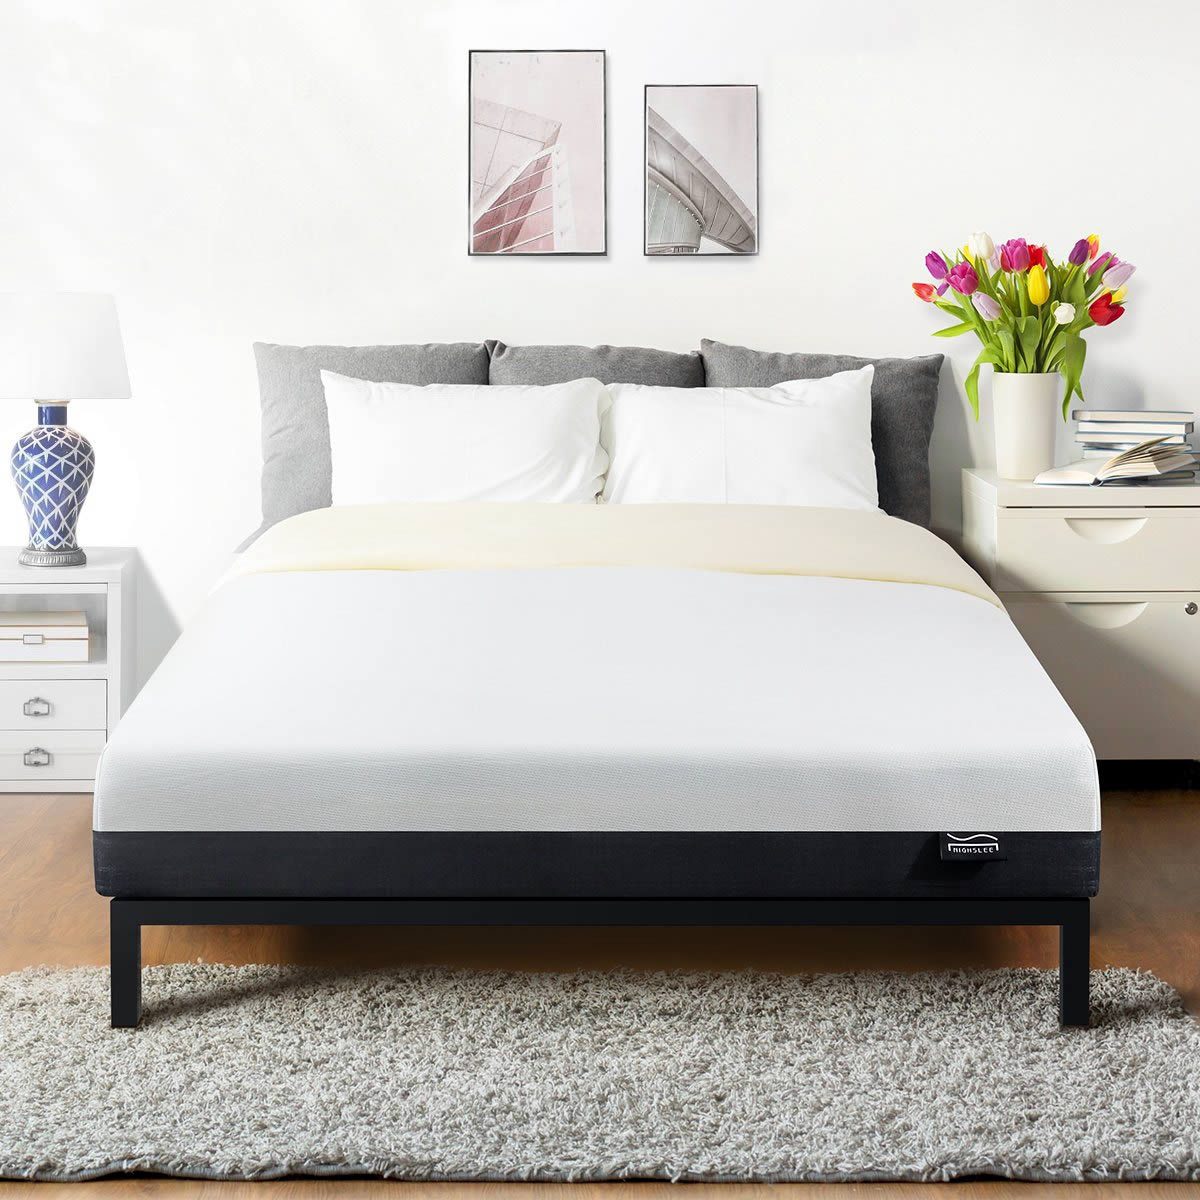 STYLISH FOR ANY BED -